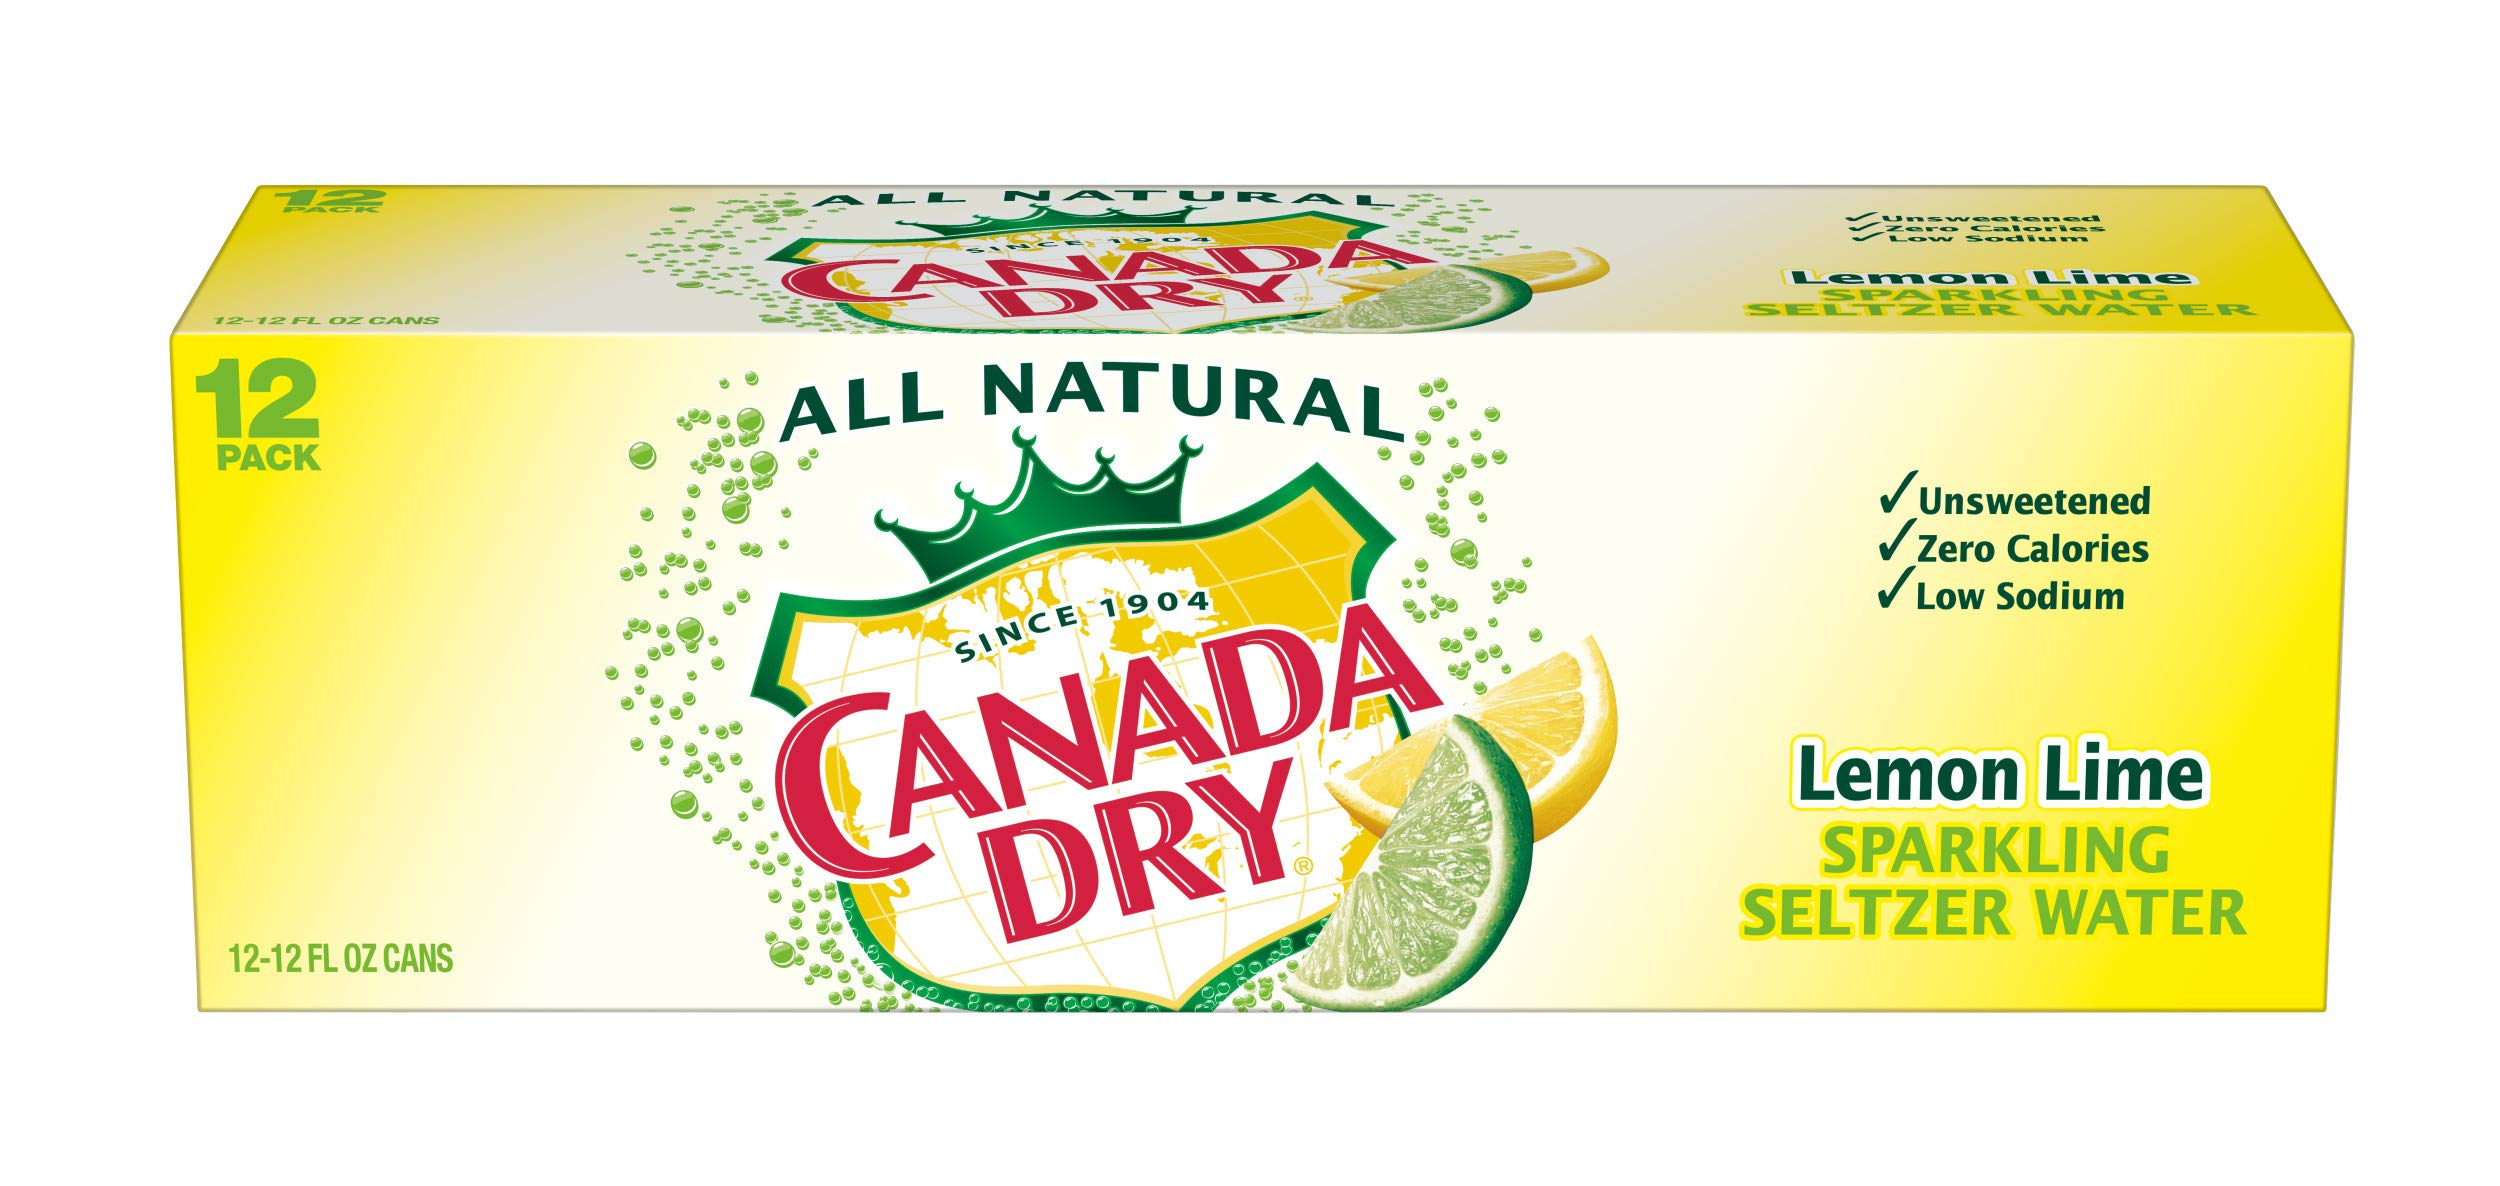 Canada Dry Lemon Lime Sparkling Seltzer Water, 12 fl oz cans, 12 count by Canada Dry